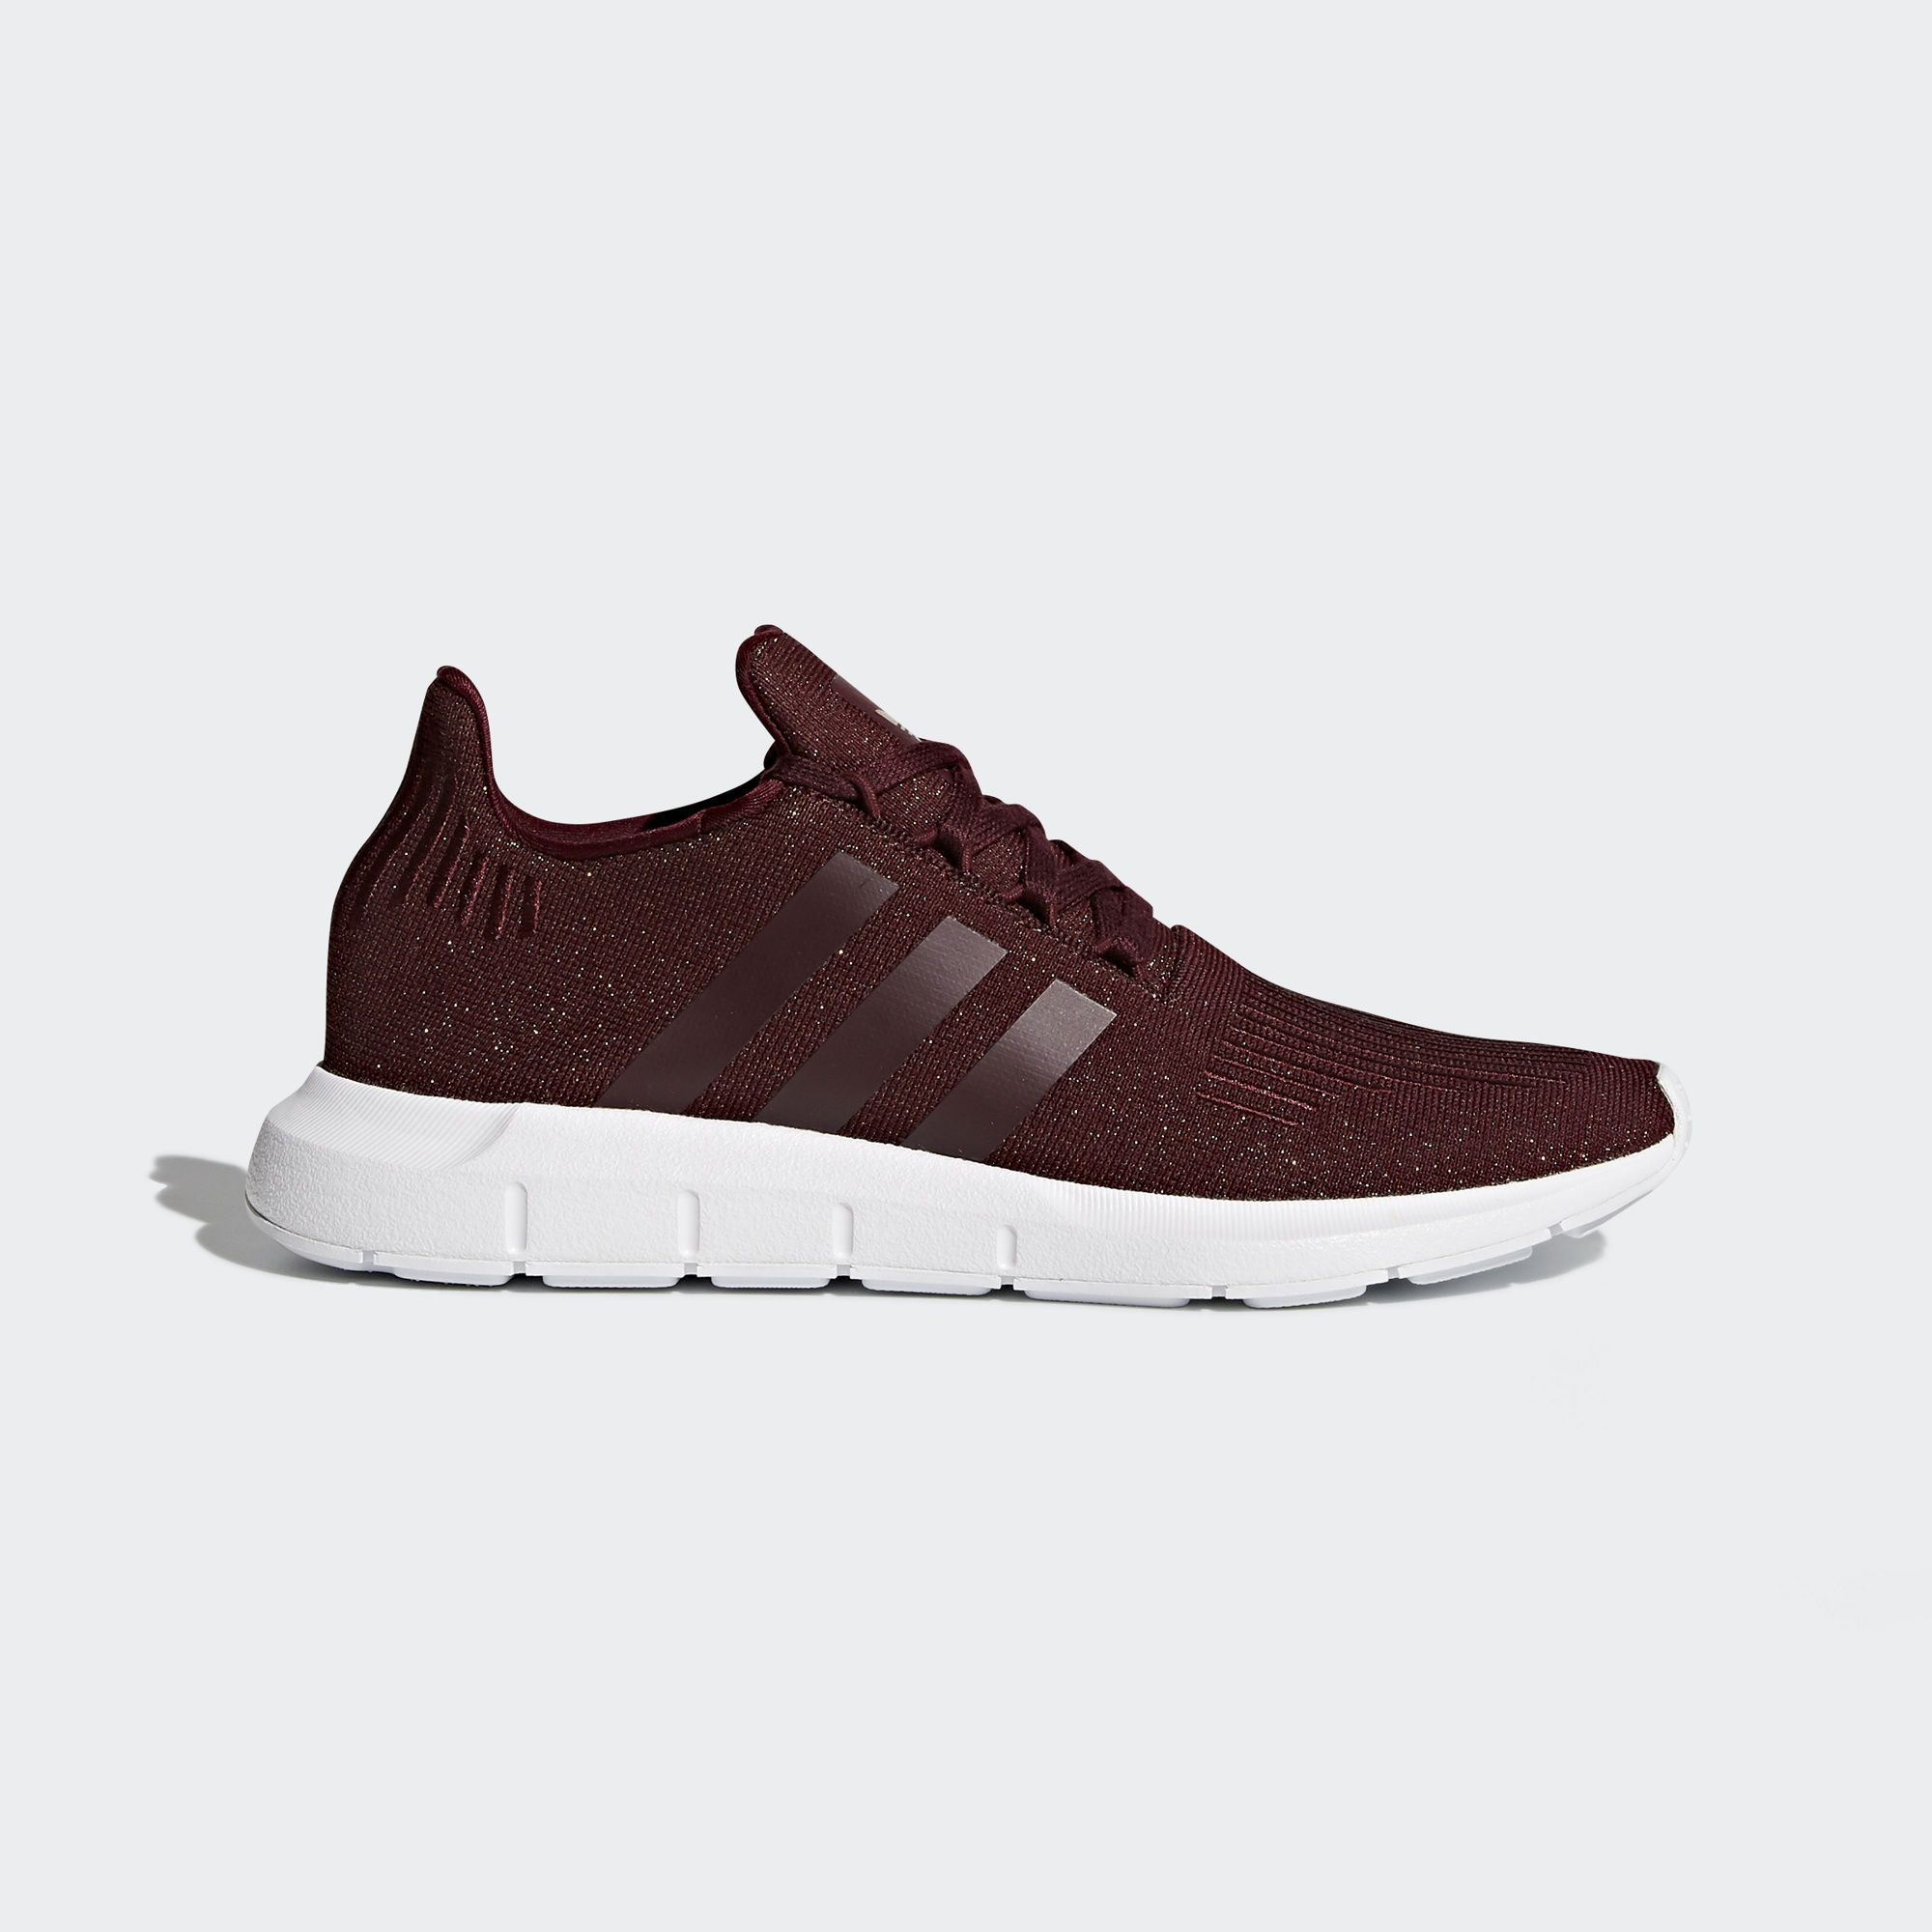 Cheapest Adidas Swift Run Adidas Shoes Wholesale Womens